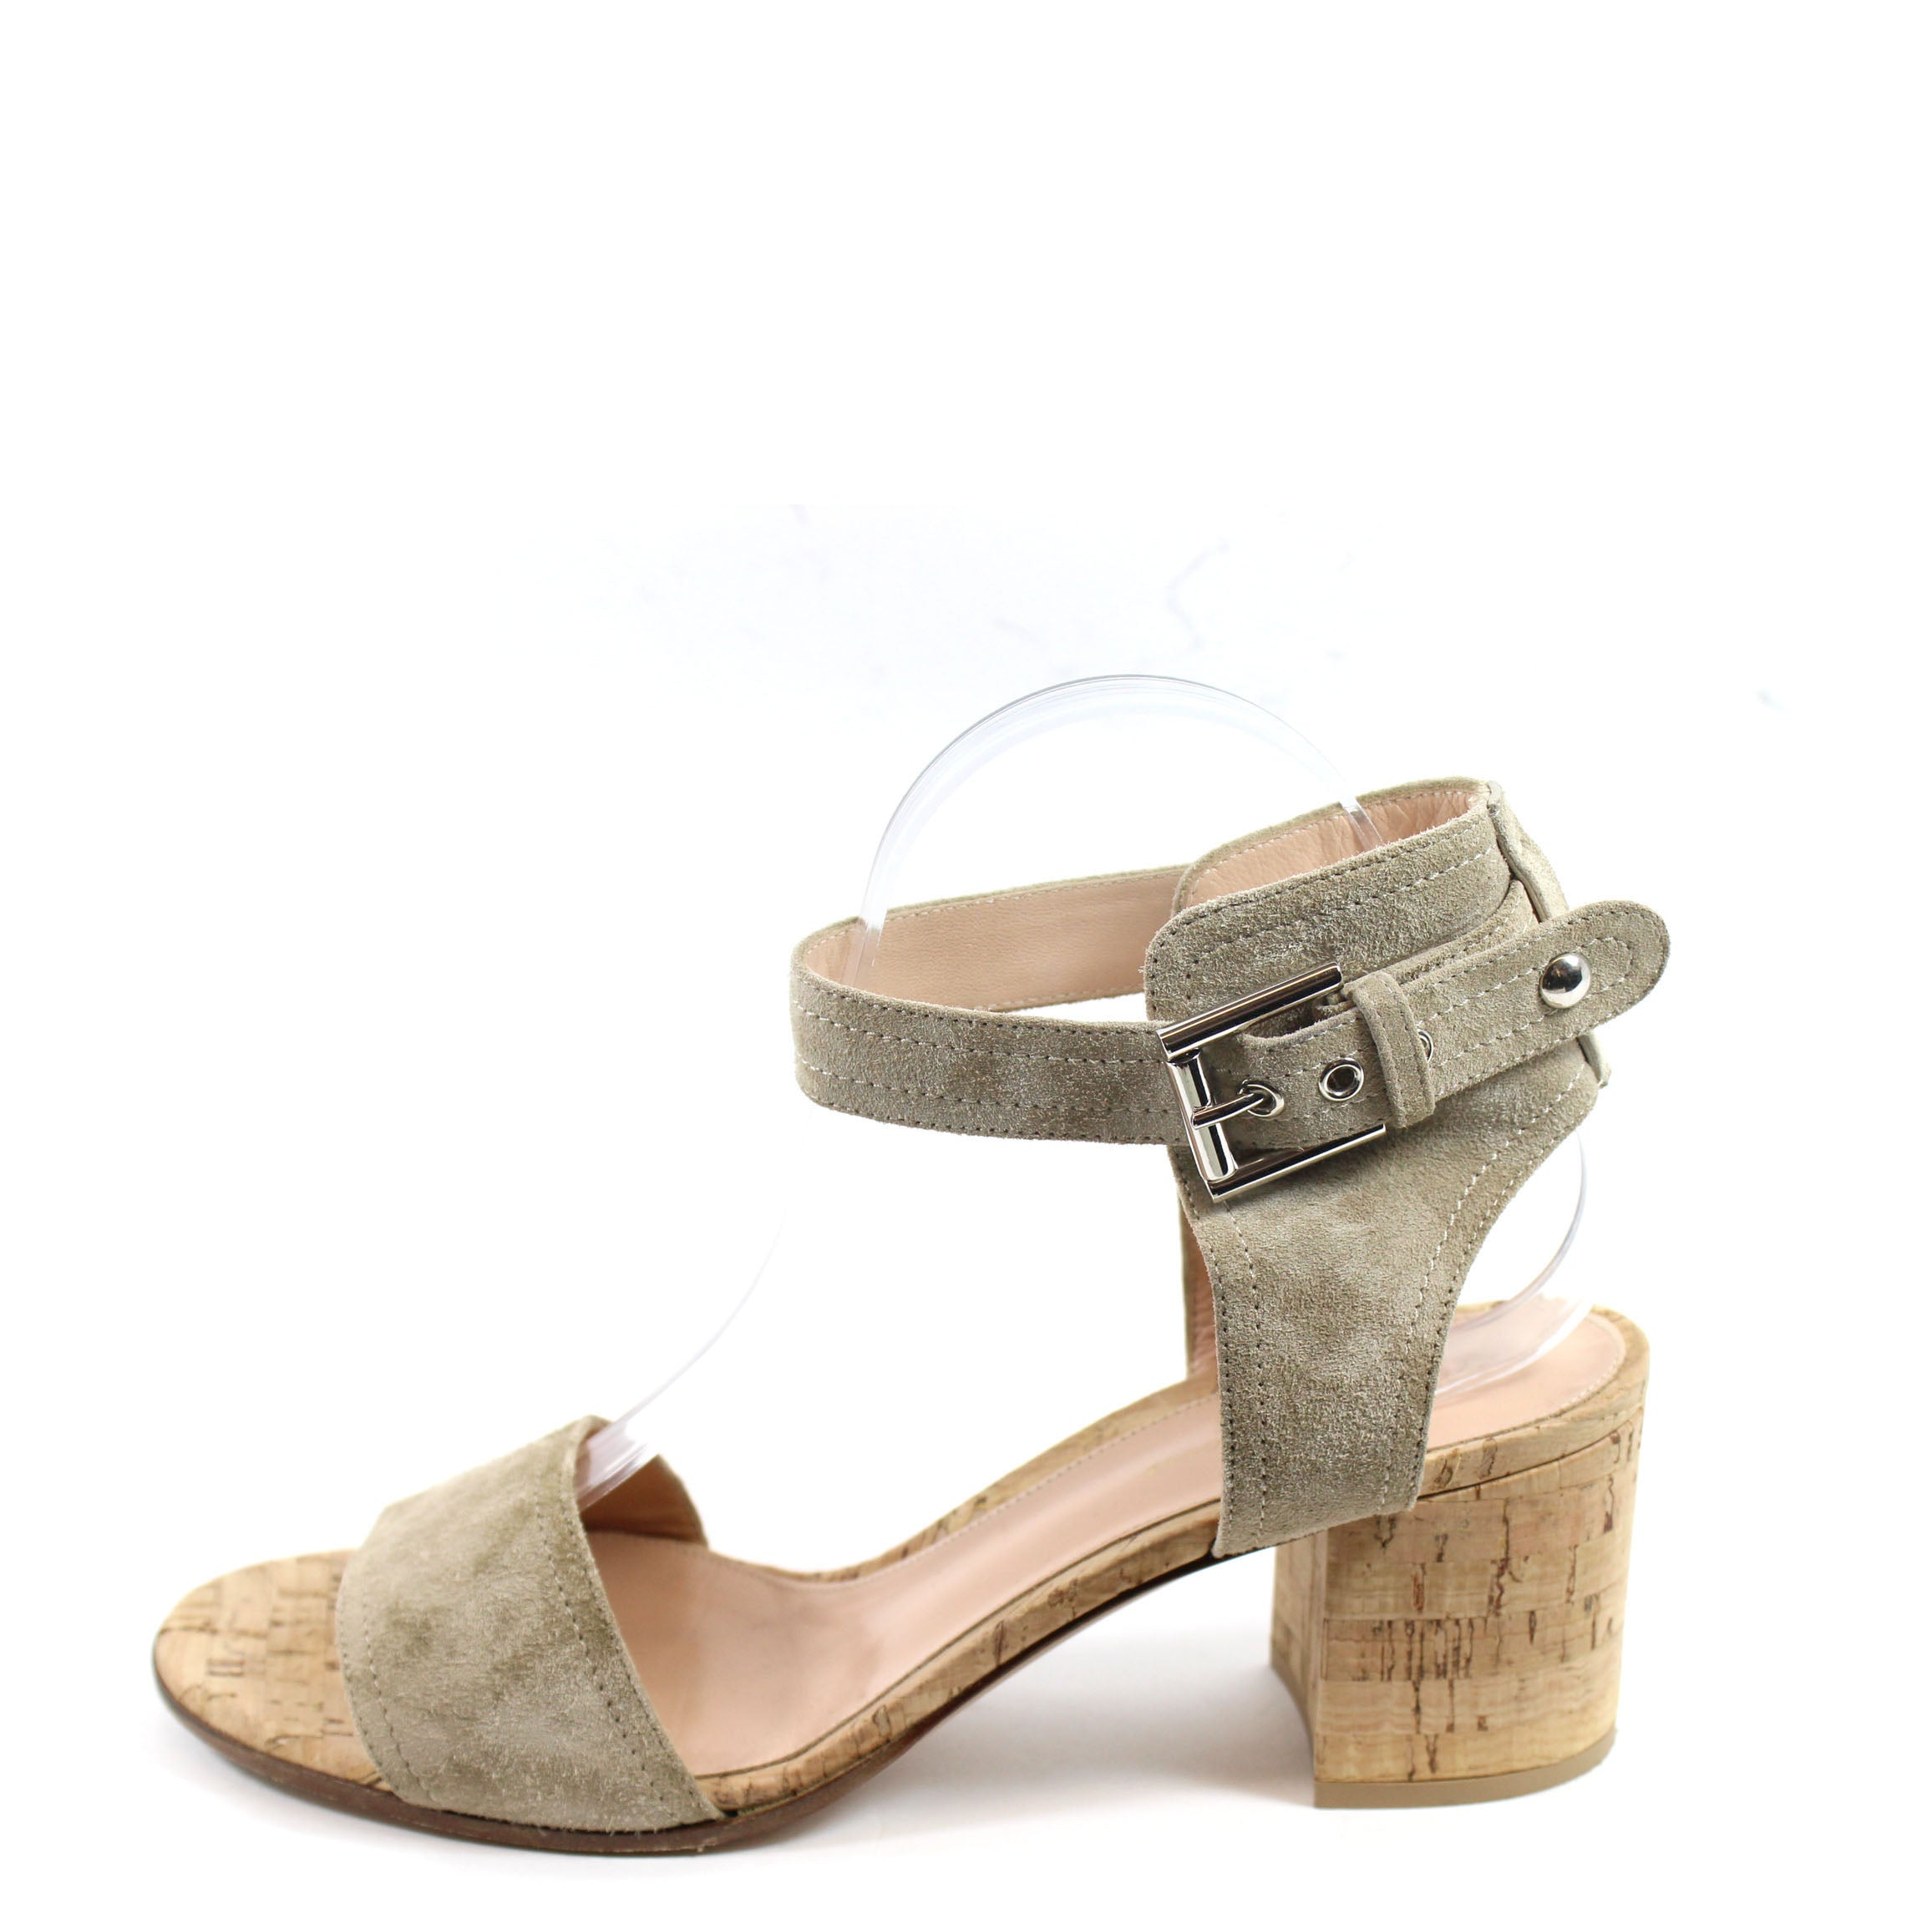 f6727eef34f Gianvito Rossi  Rikki  Taupe Suede Cork Sandals (Size 41) – Encore  Consignment